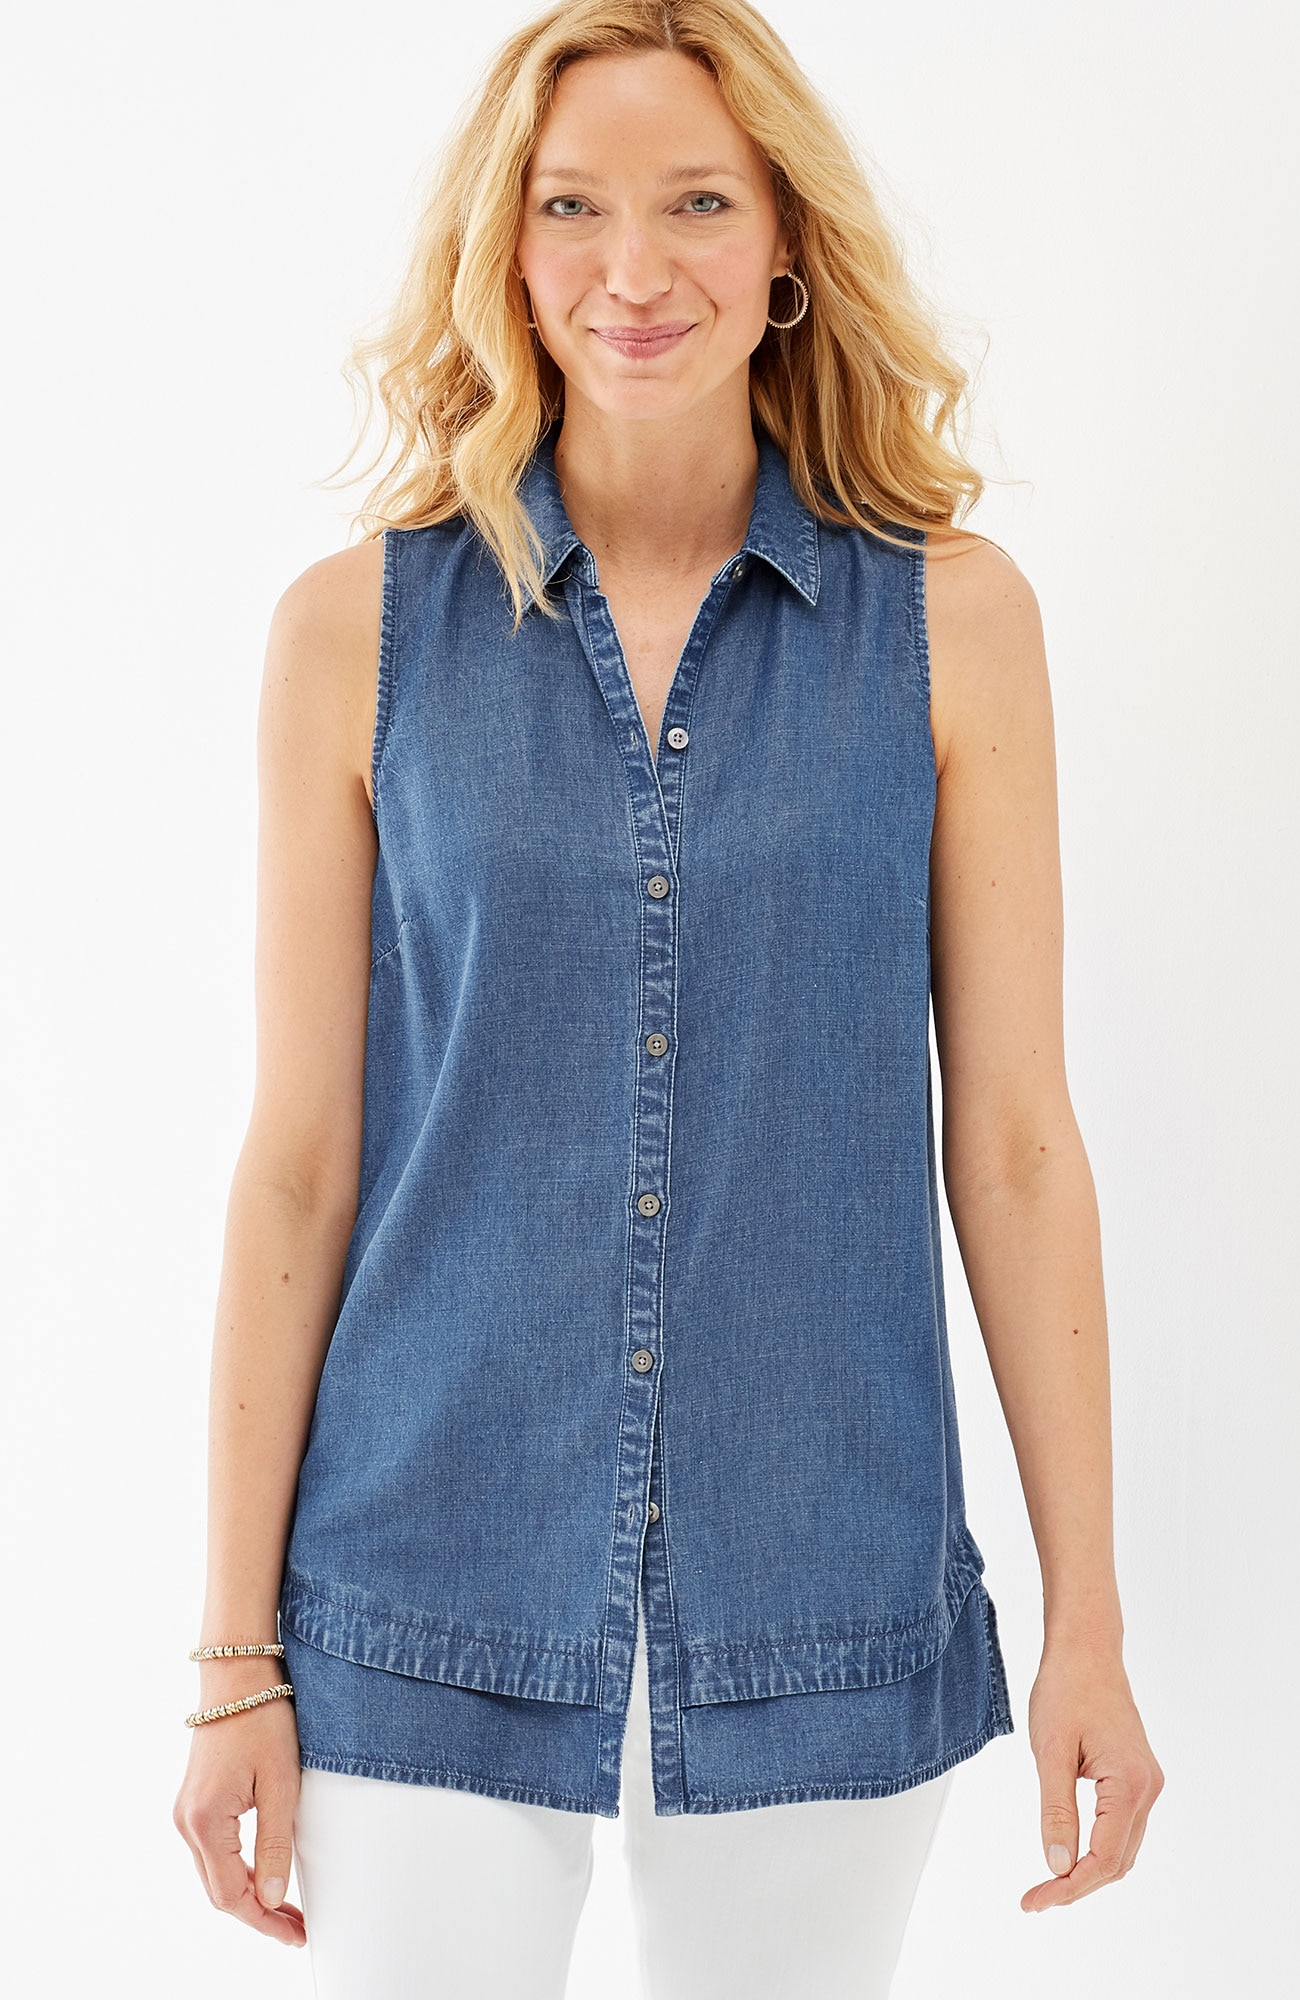 Tencel®-Soft indigo sleeveless shirt